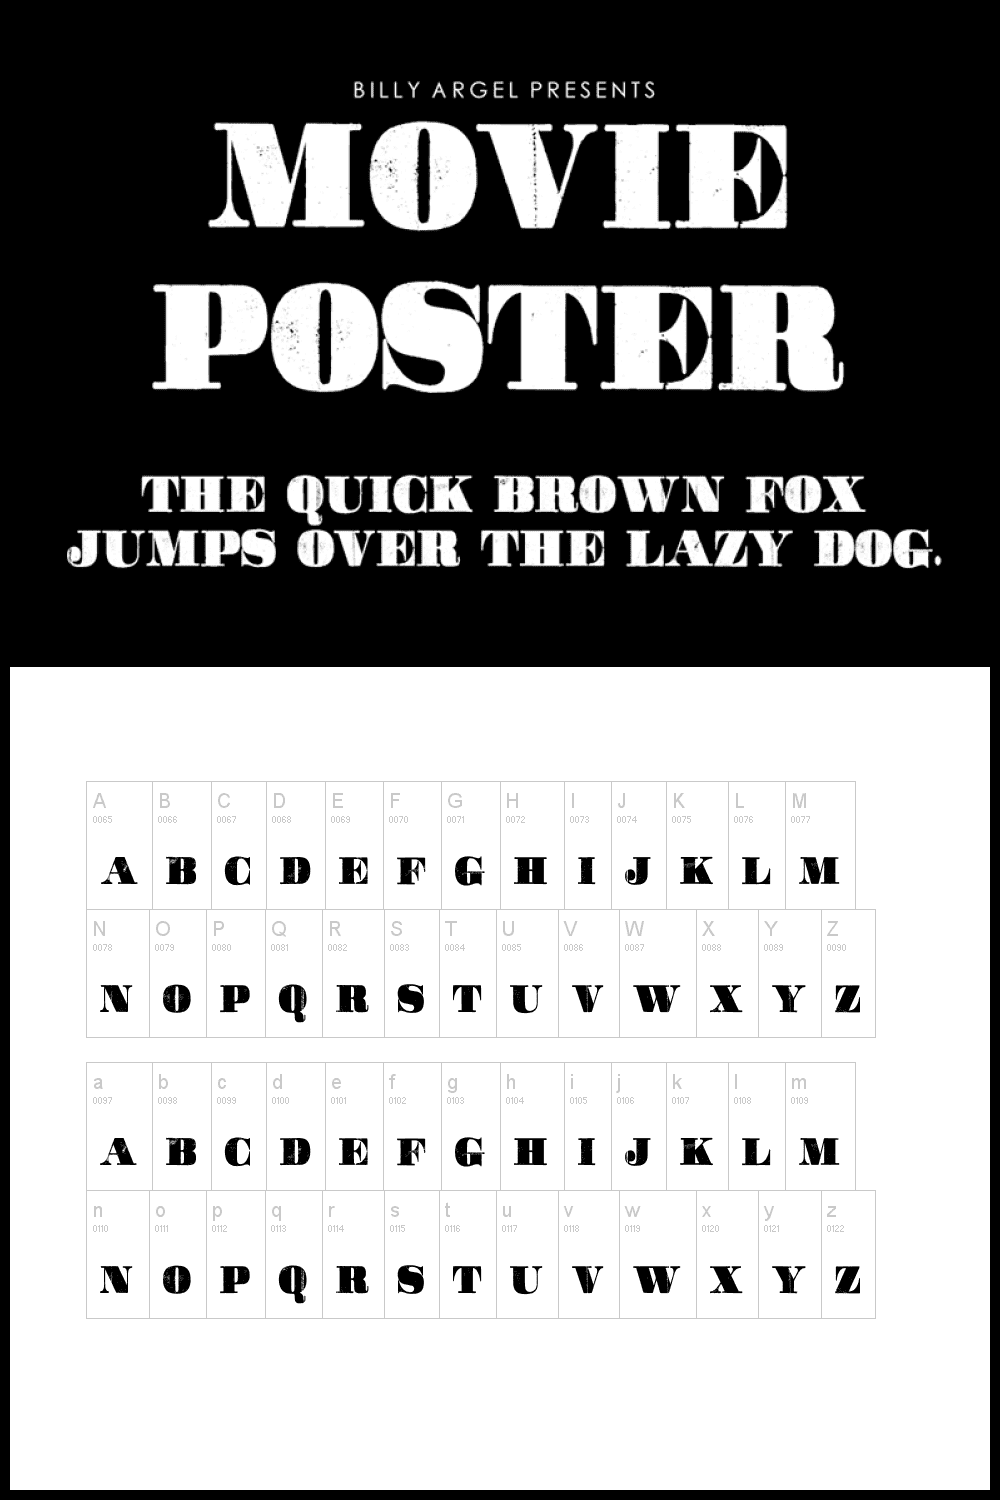 A massive font with worn black letters.